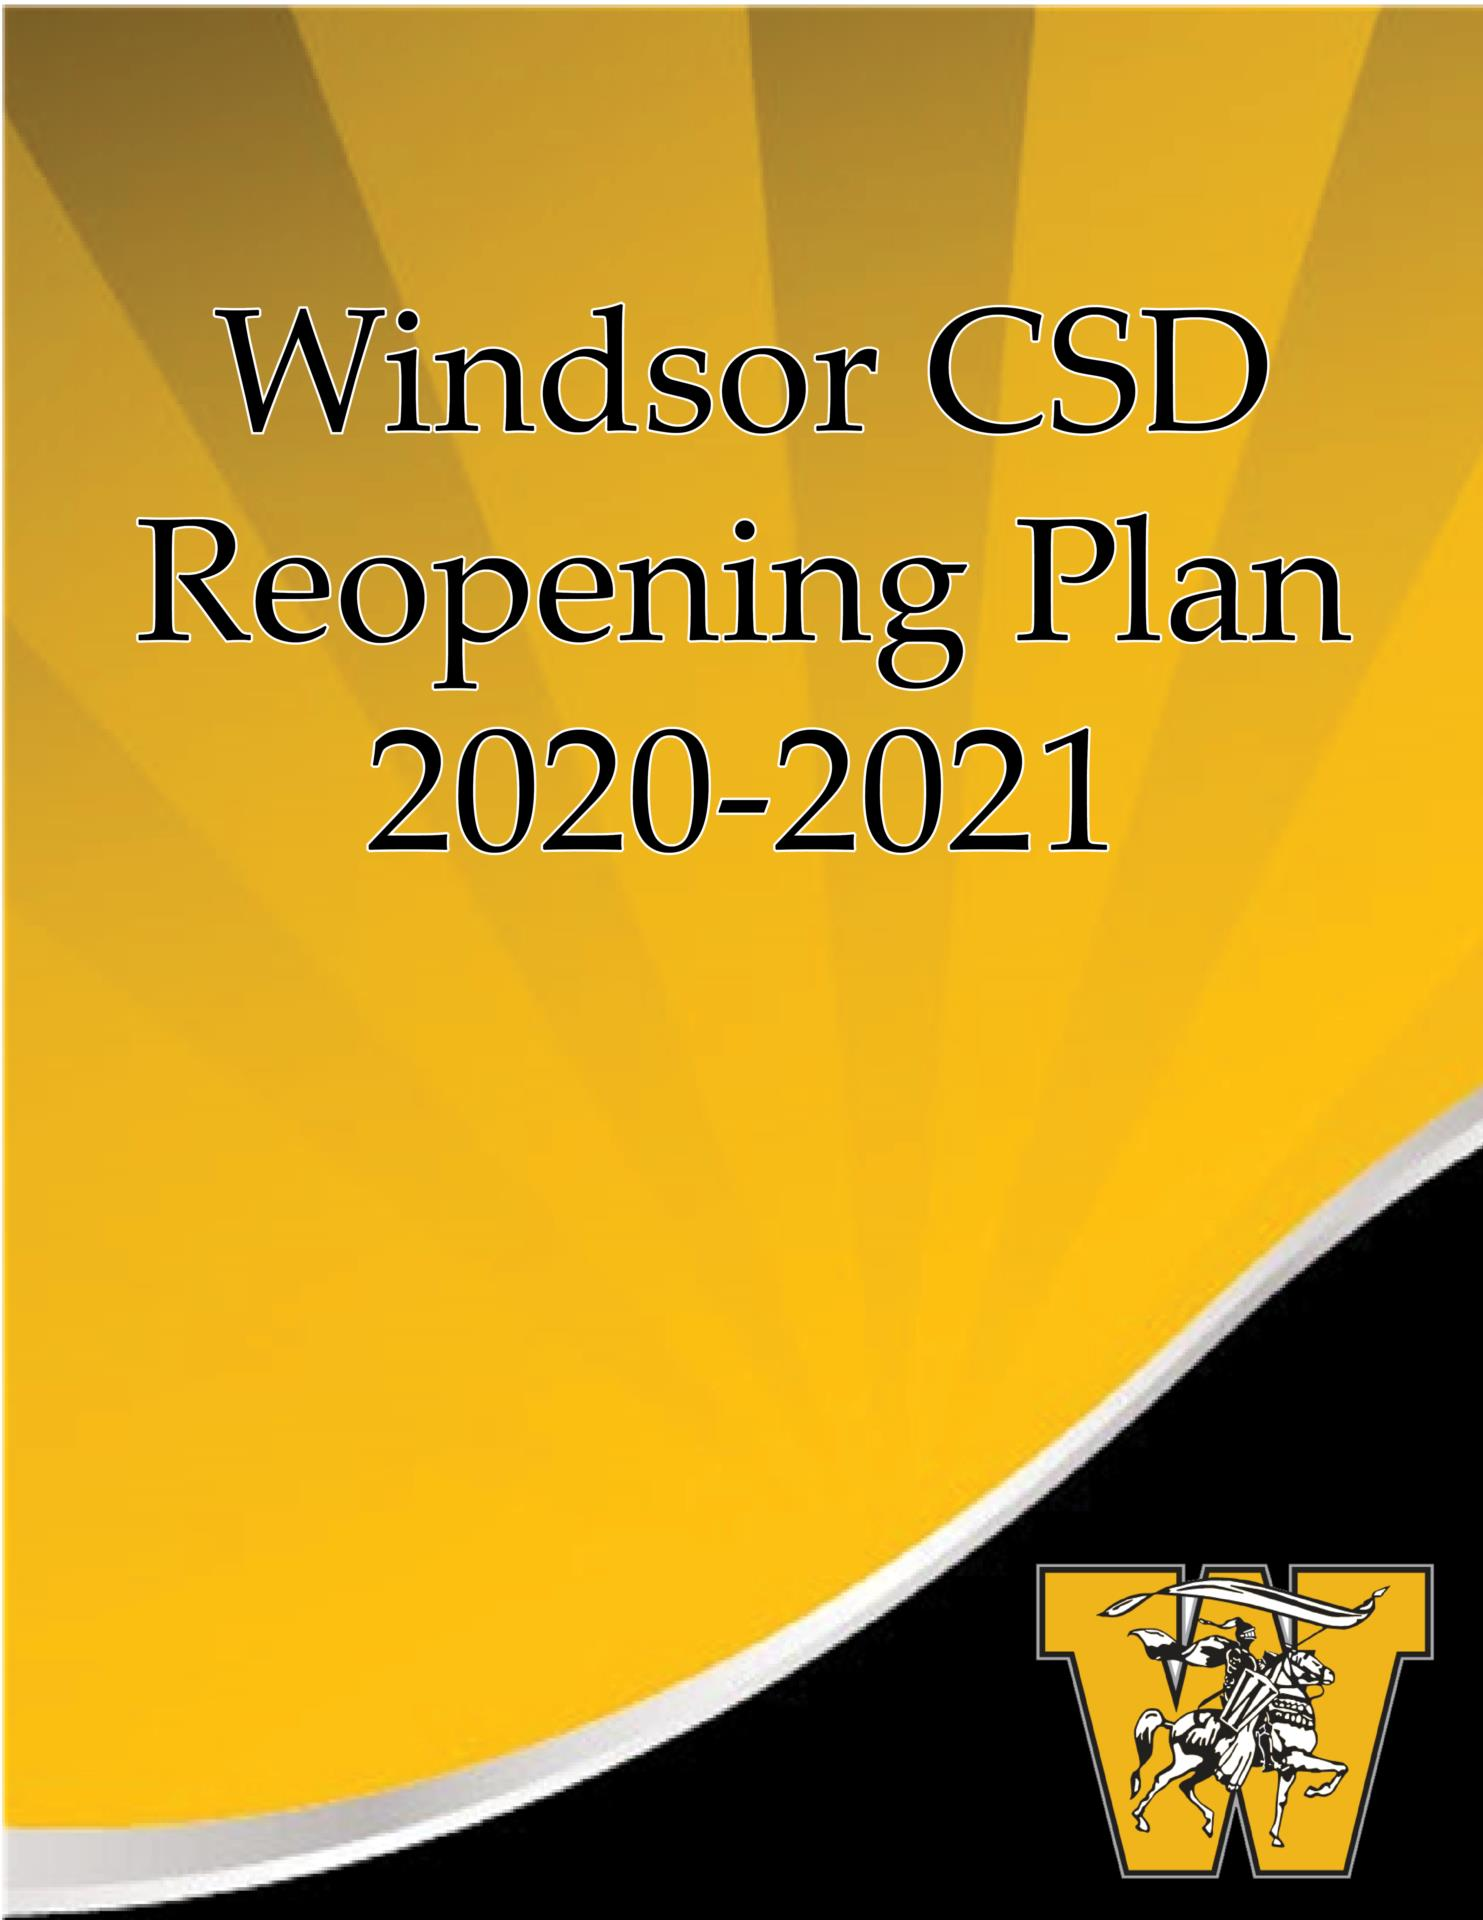 Black and gold cover with Windsor CSD Reopening Plan 2020-2021